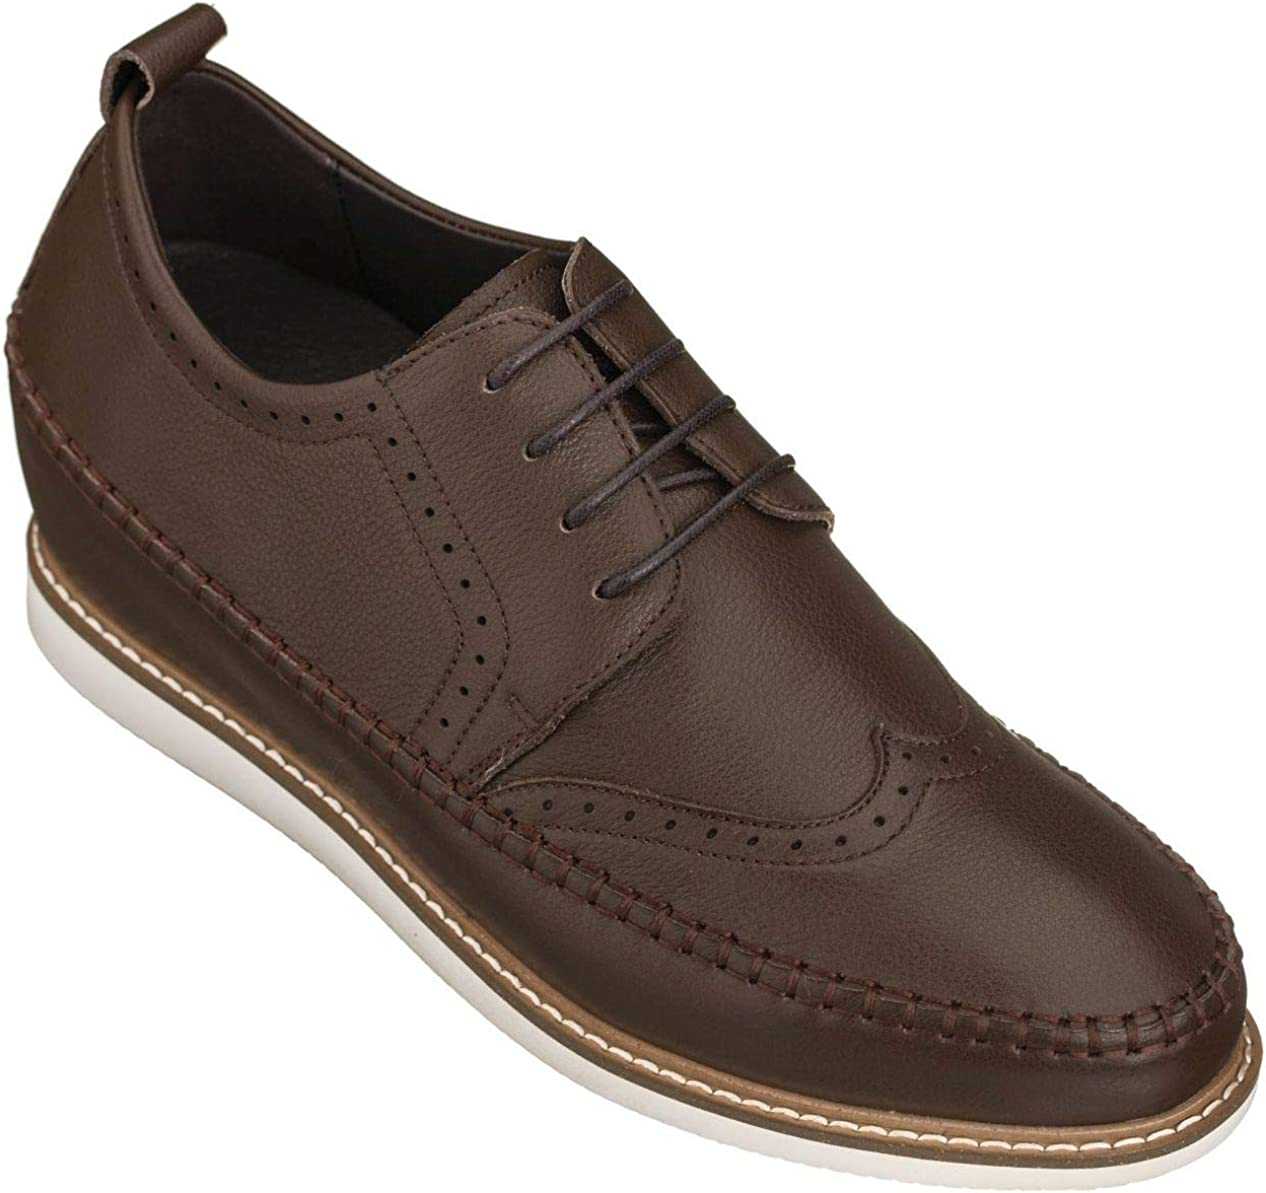 CALTO Men's Invisible Height Increasing Elevator Shoes - Premium Suede Lace-up Dress Formal Wing-tip Oxfords - 3 Inches Taller